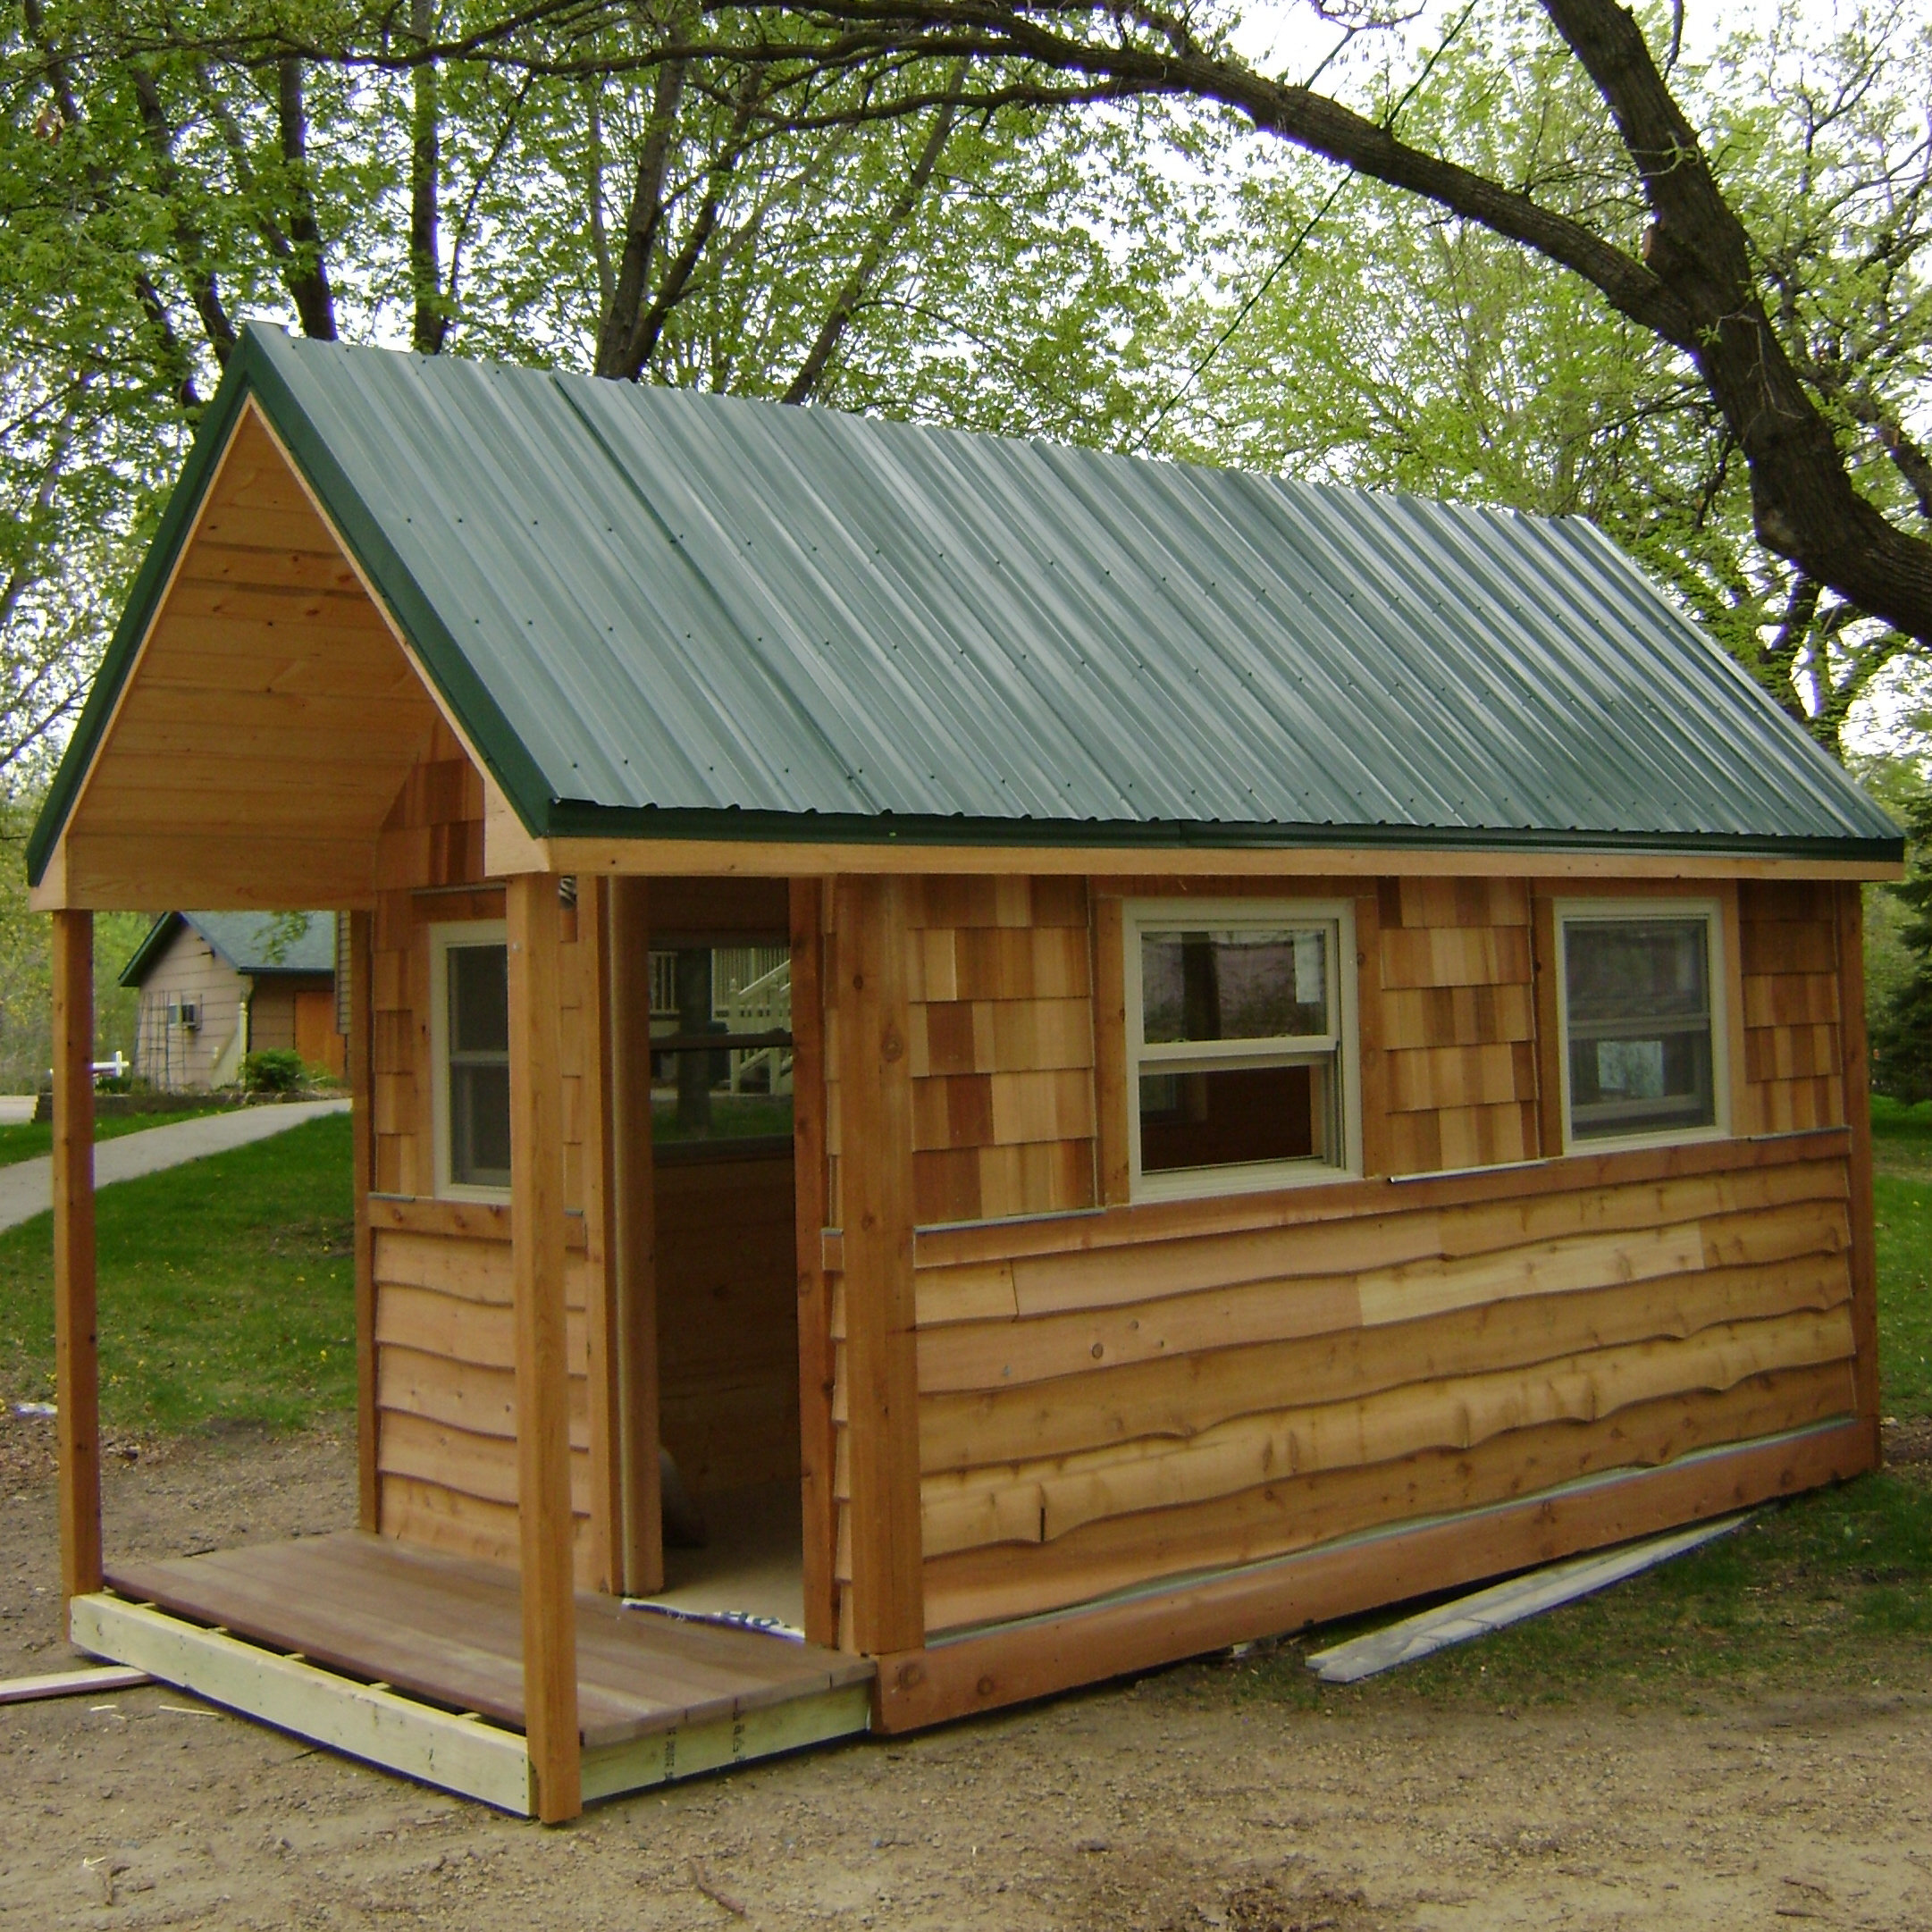 lowe s home kits floor plan html with Ed8618409364d2ab Small Cabins Tiny Houses Prefab Tiny Houses on 7ca74b2720c64f3c Log Cabins Home Depot Home Depot Two Story Barn Shed also Pole Barn Online Design also Download Shed Plans At Lowes moreover New homes planned for witney in addition Glacier Bay Teapot 4 In Centerset 2 Handle Low Arc 34446529940f7bd6.